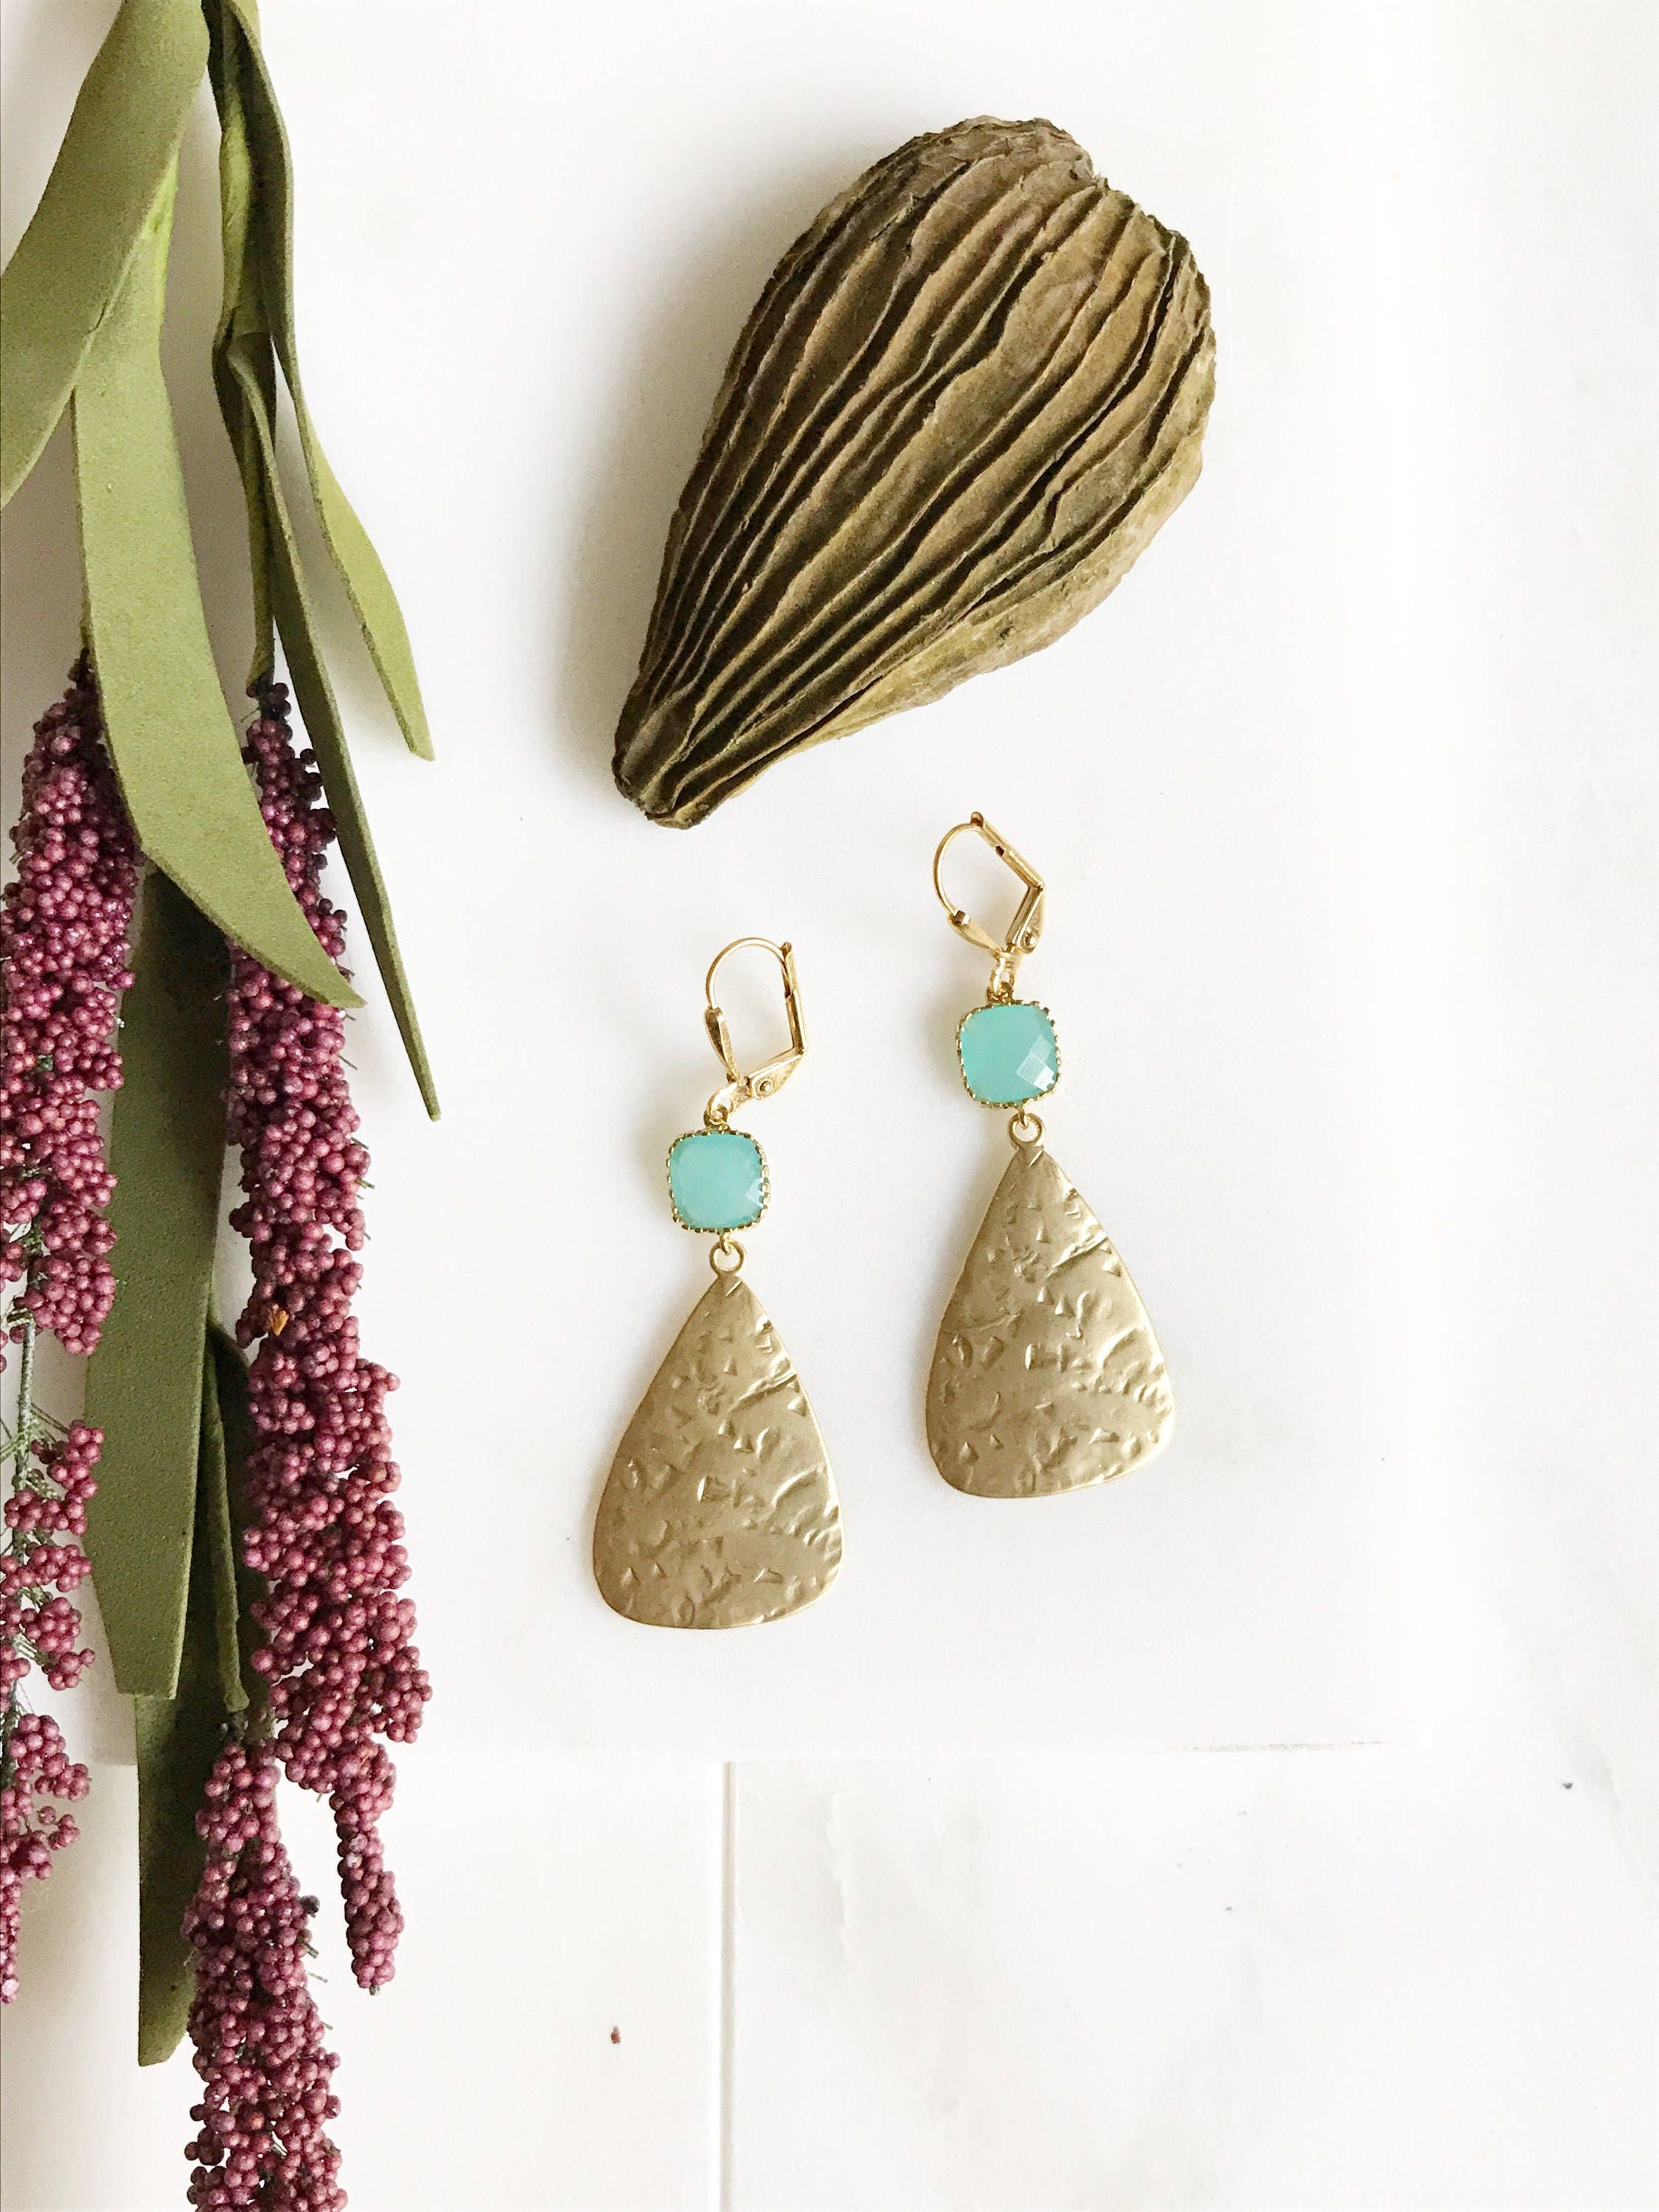 Turquoise Stone and Gold Chandelier Earrings Dangle Earrings